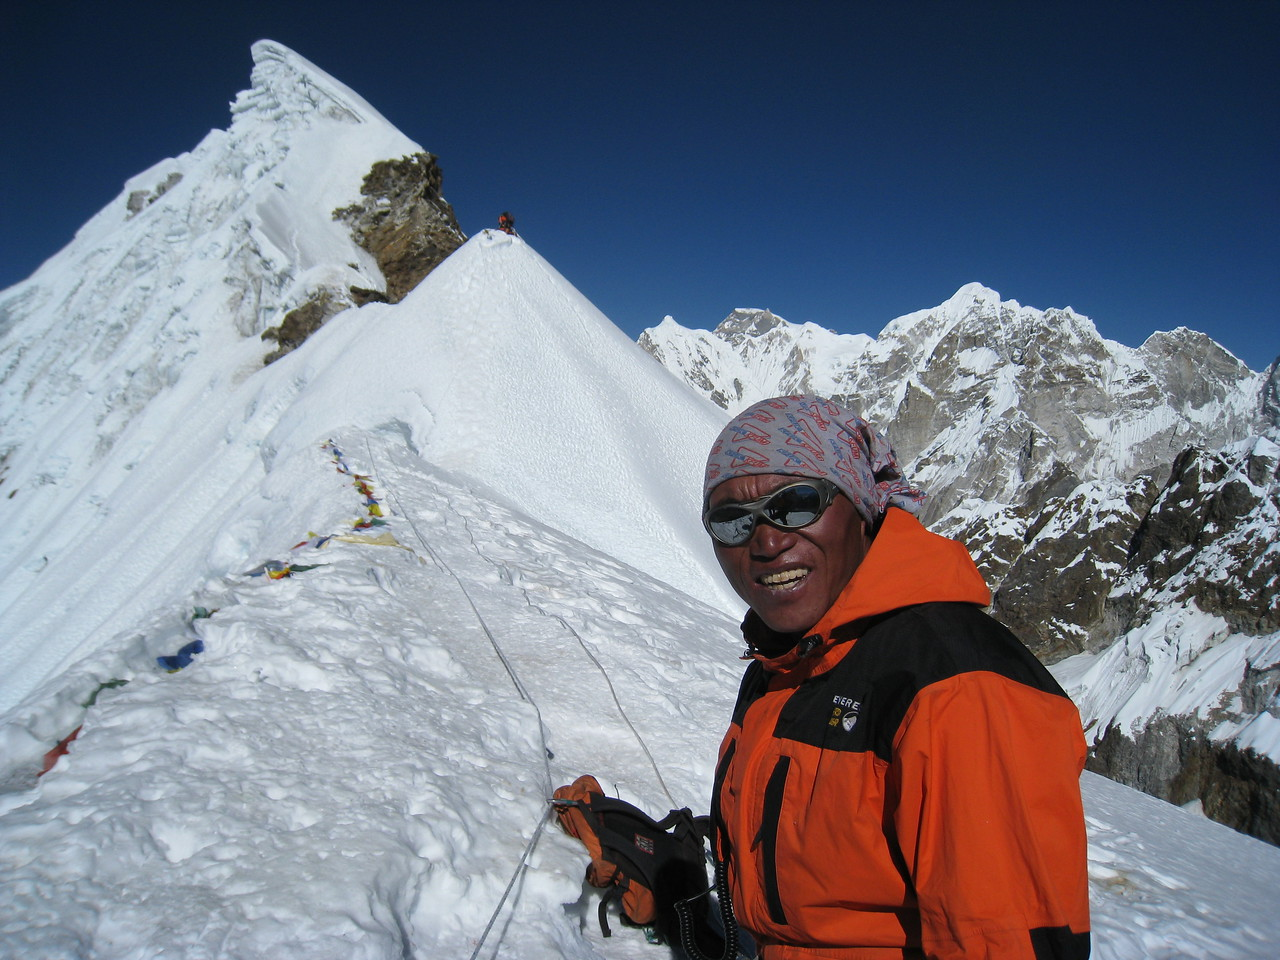 Mingma is an incredibly strong Sherpa and has climbed Everest once.